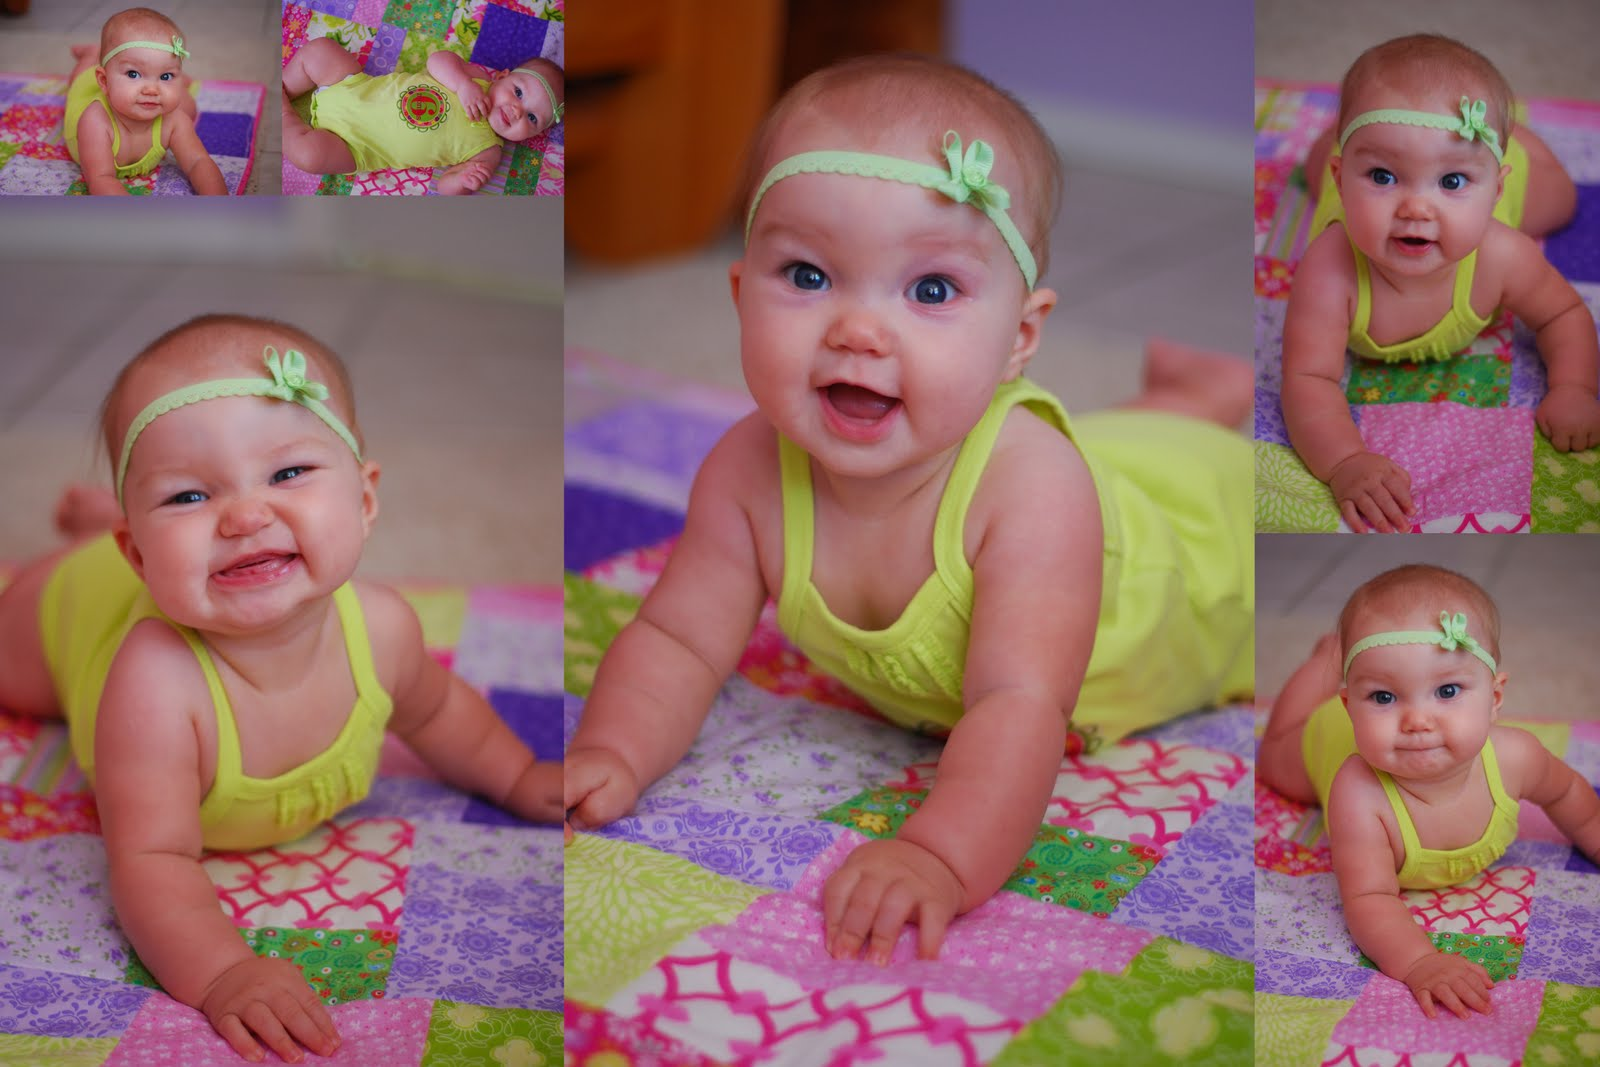 Month baby girl photo shoot ideas we celebrated her 6 month